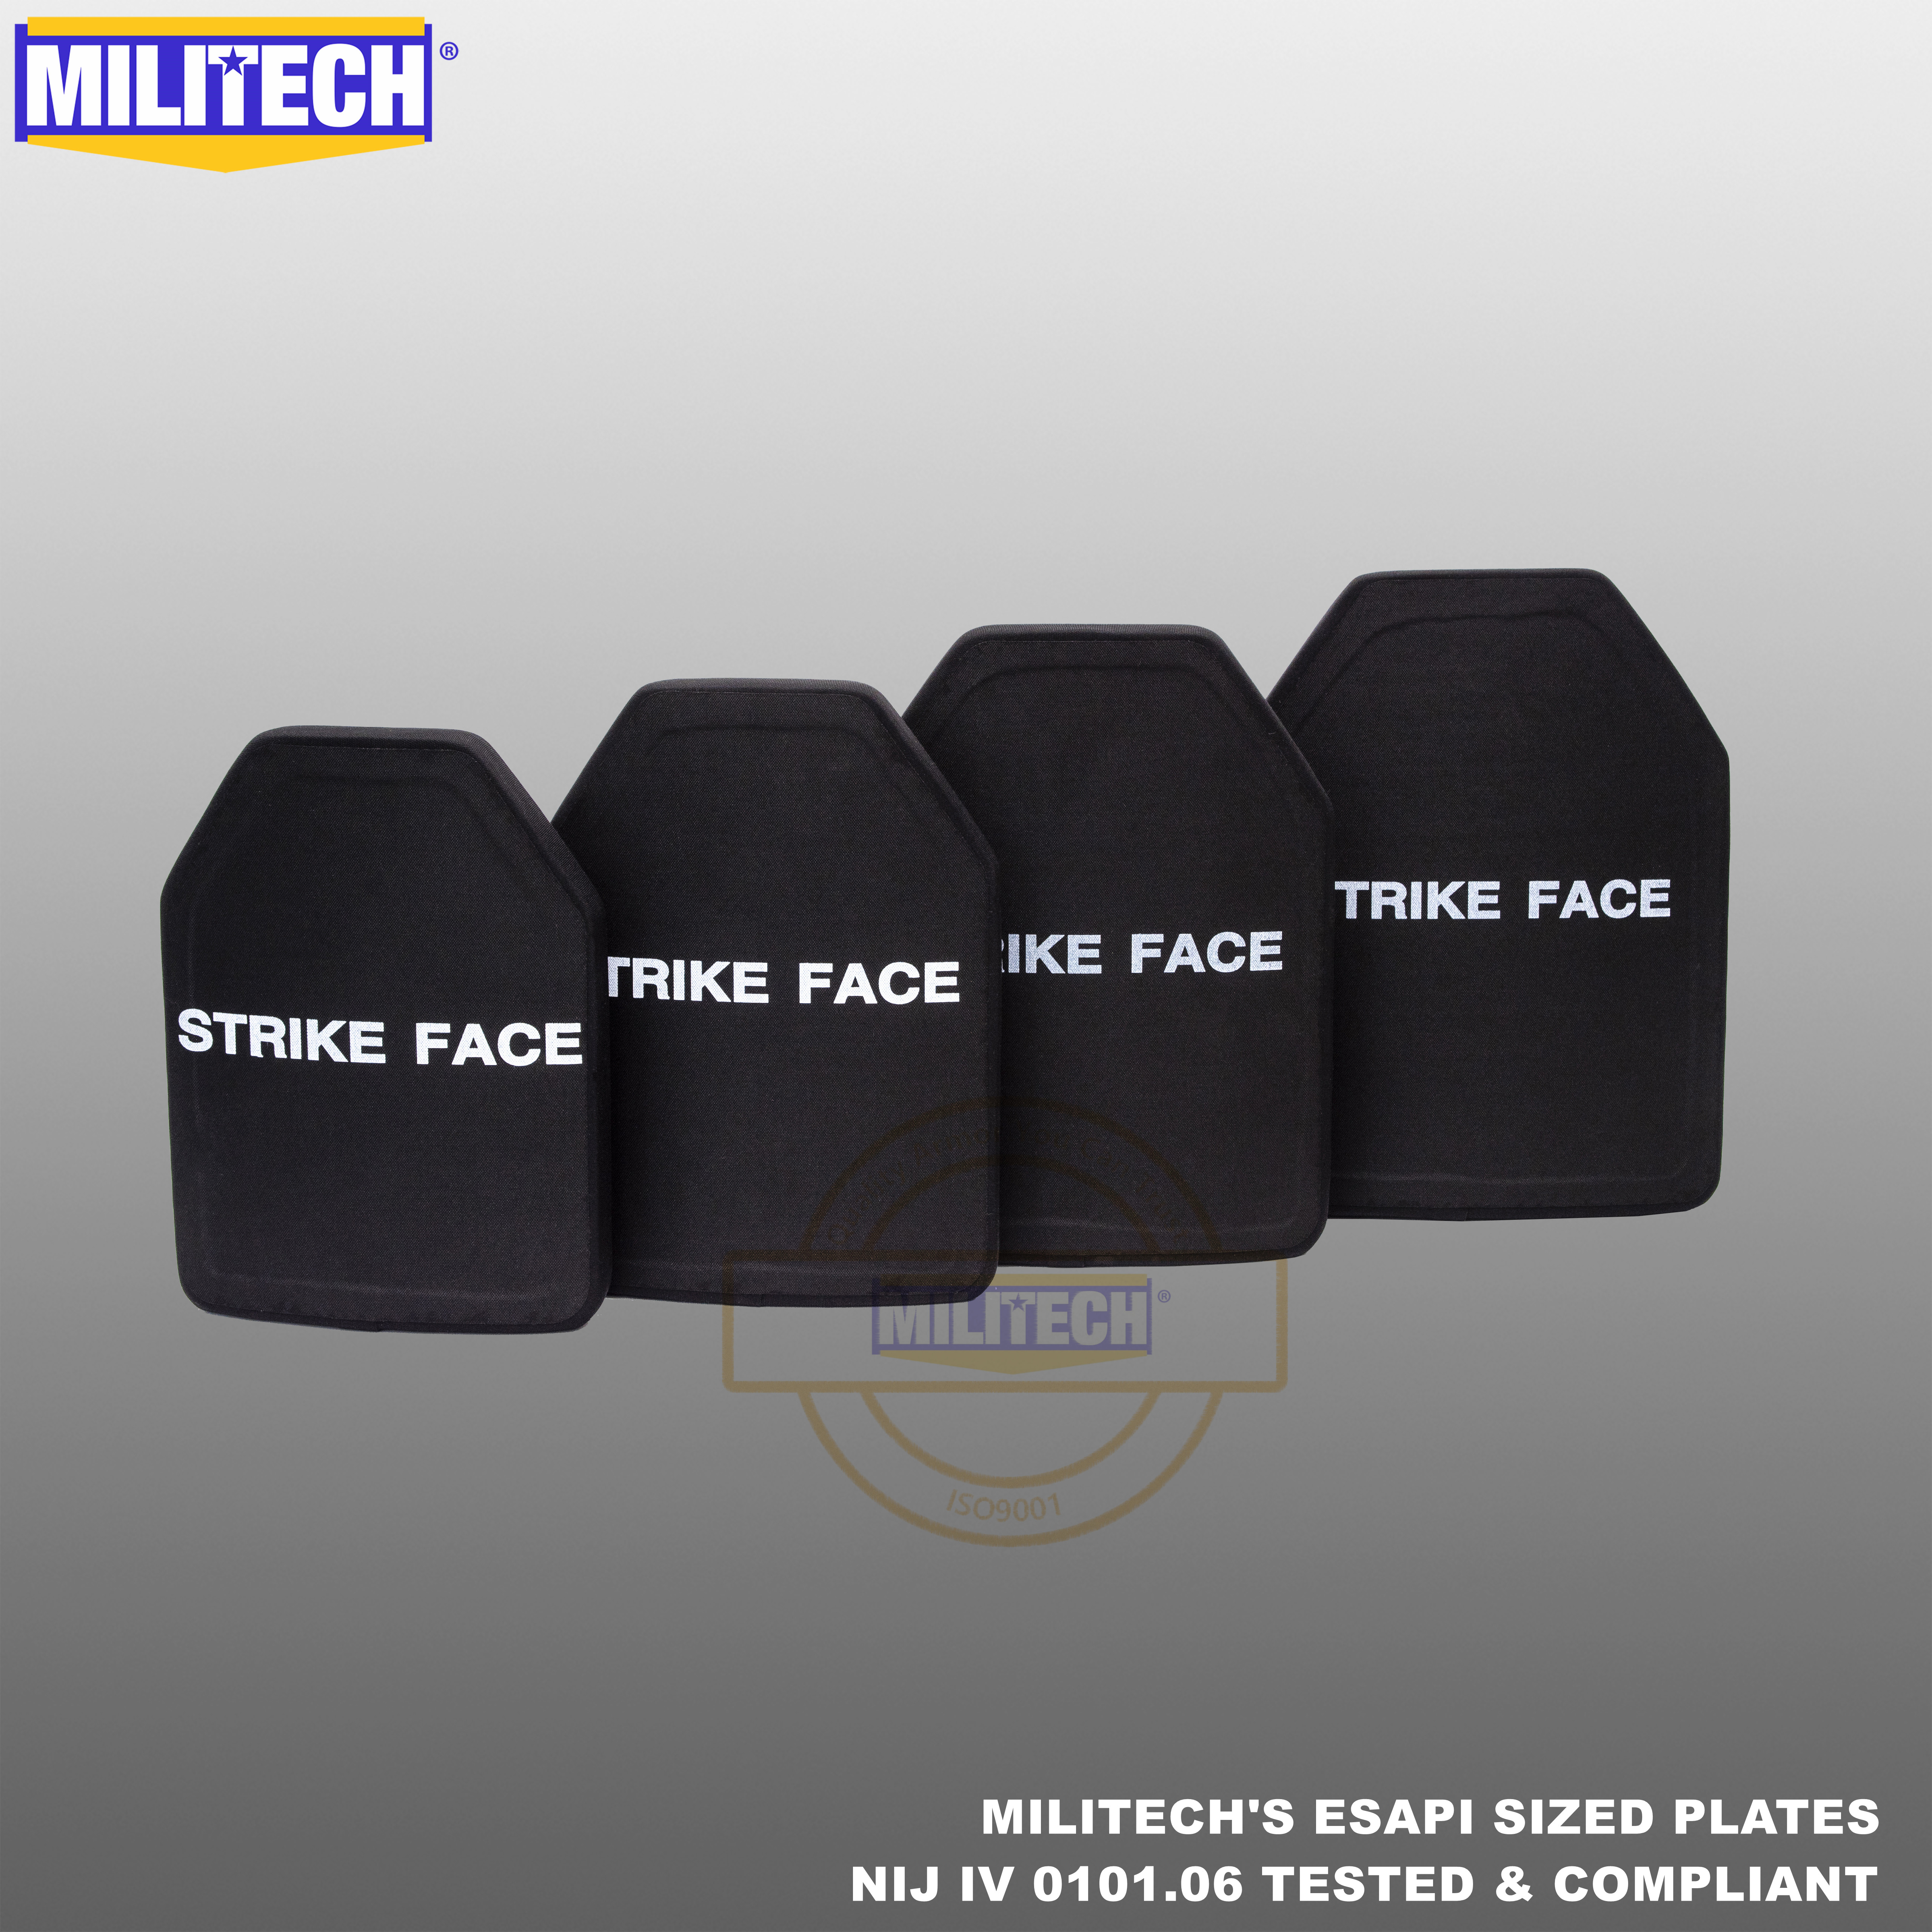 ESAPI Bulletproof Plate Ballistic Panel NIJ Level 4 IV Alumina & PE Stand Alone From Size S To XL Body Armor One(1) PC--Militech